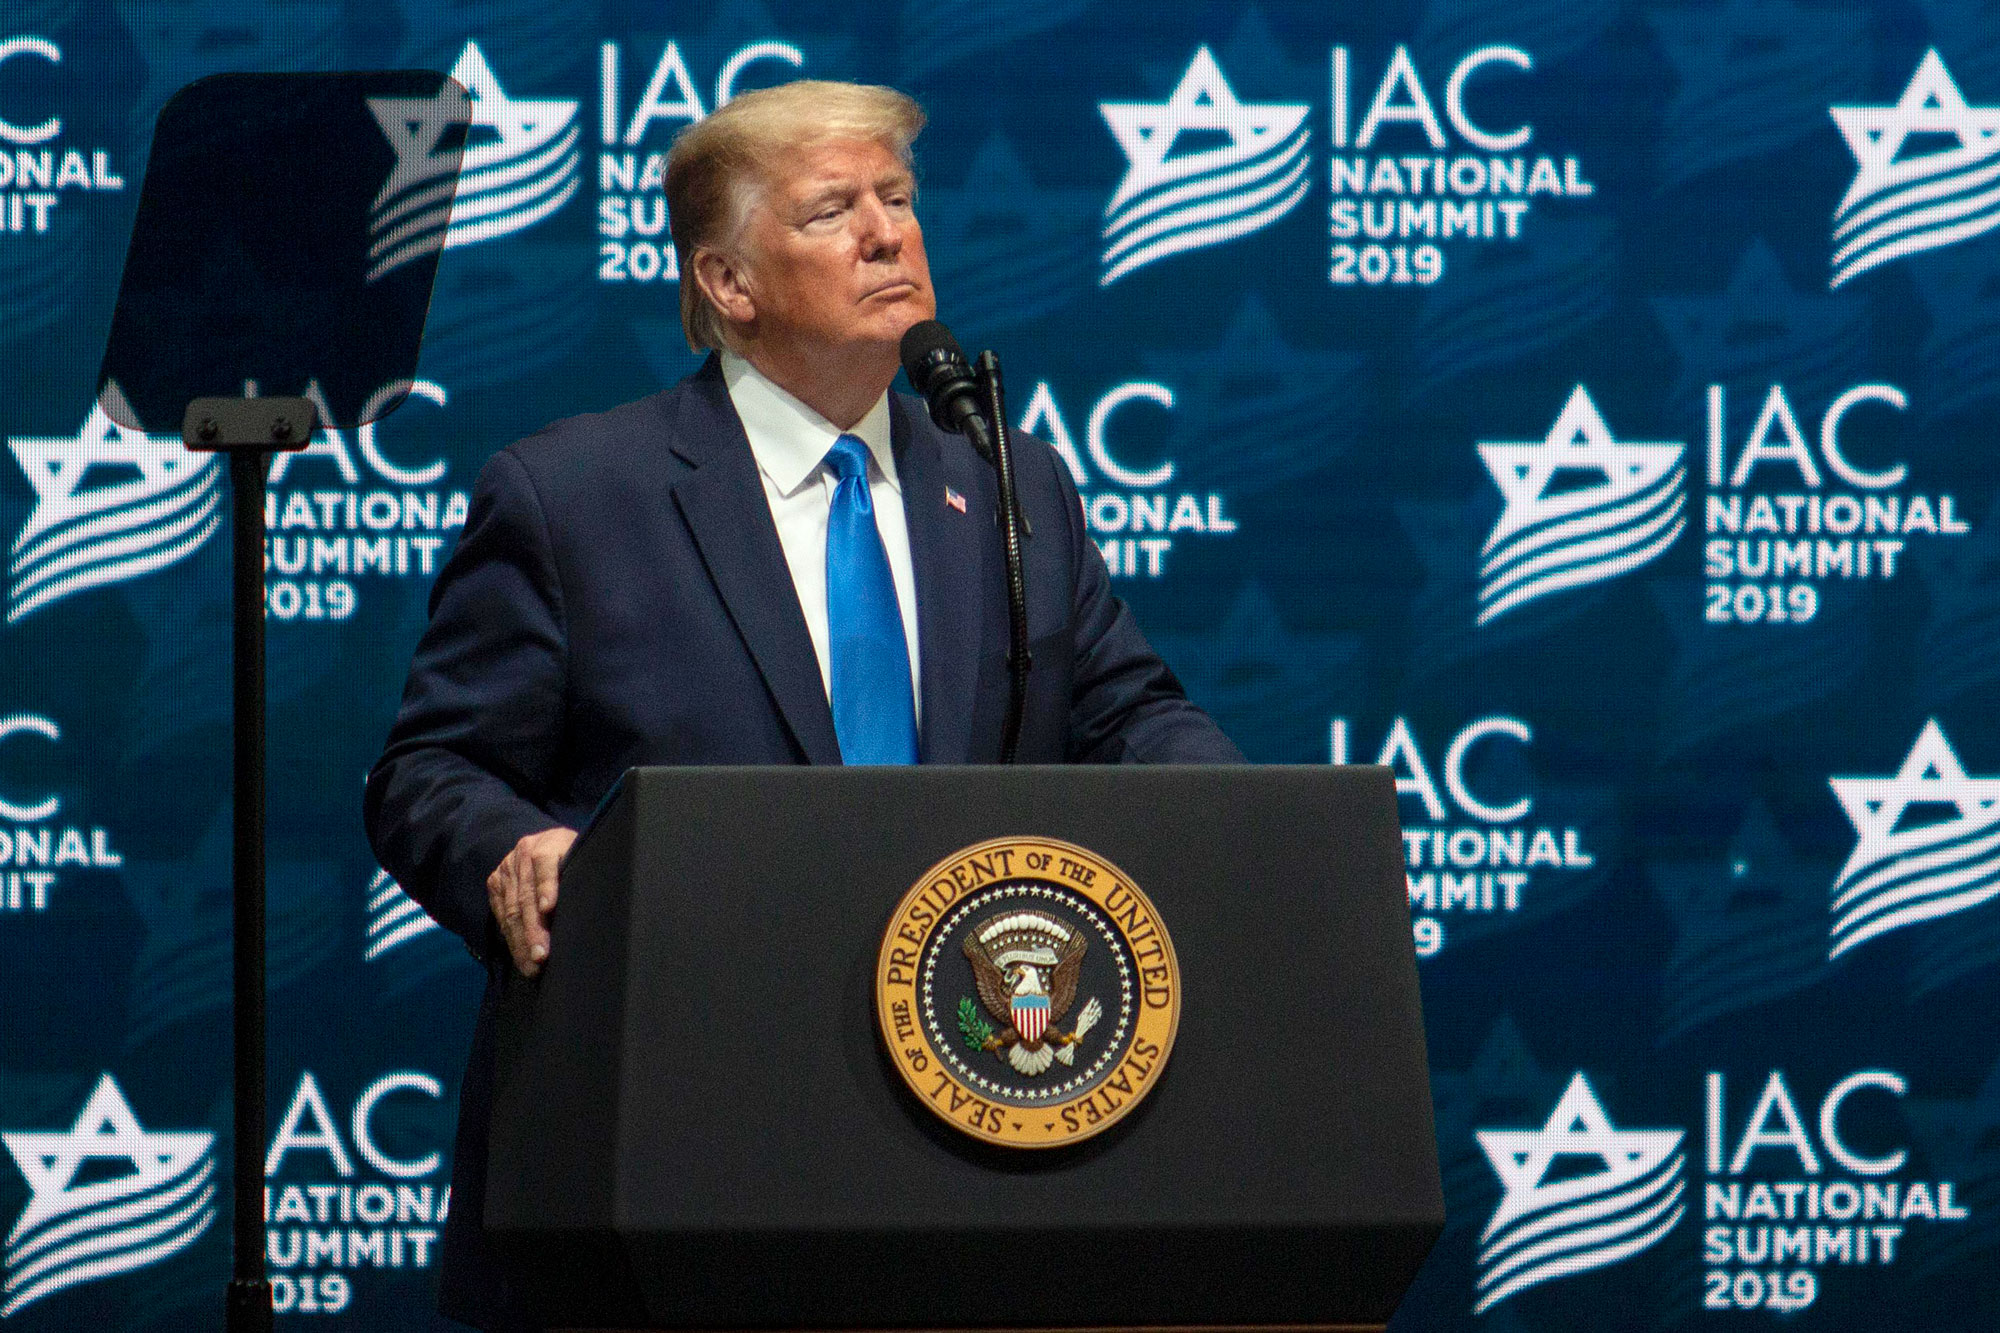 Jewish leaders criticized Trump for telling Jewish audience they have 'no choice' but to vote for him instead of Elizabeth Warren's wealth tax